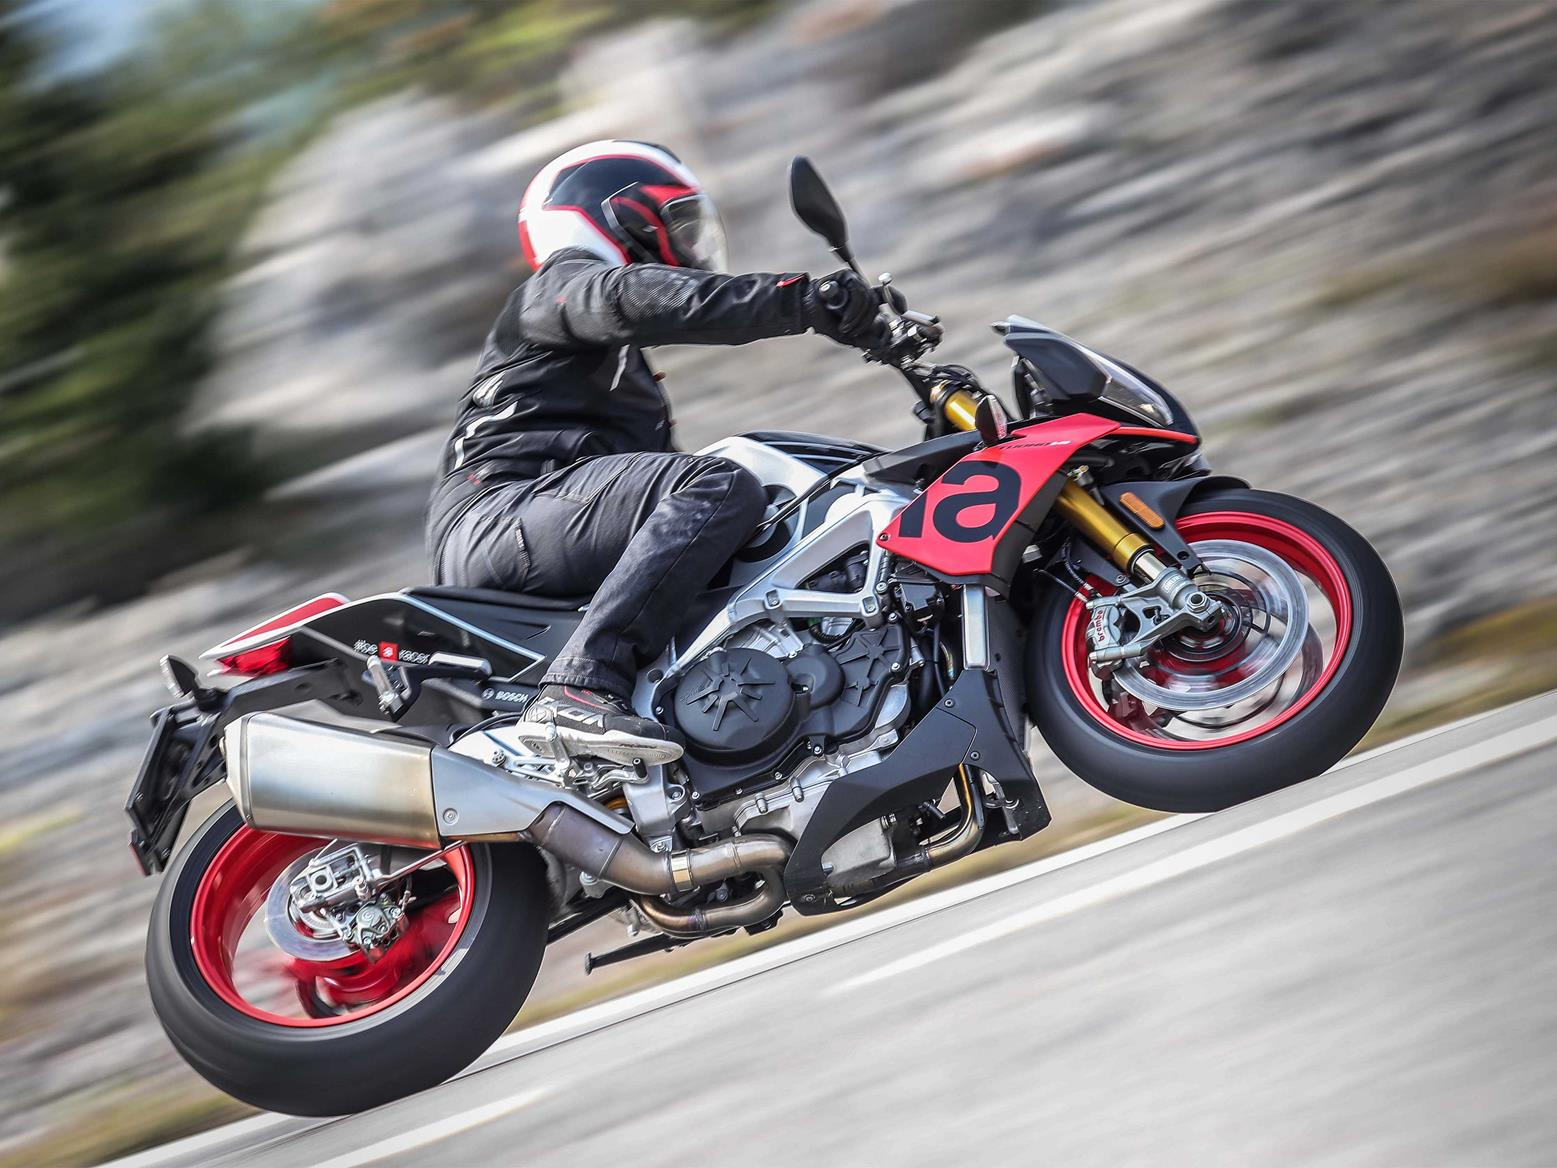 The Aprilia Tuono has always been top of the naked pile